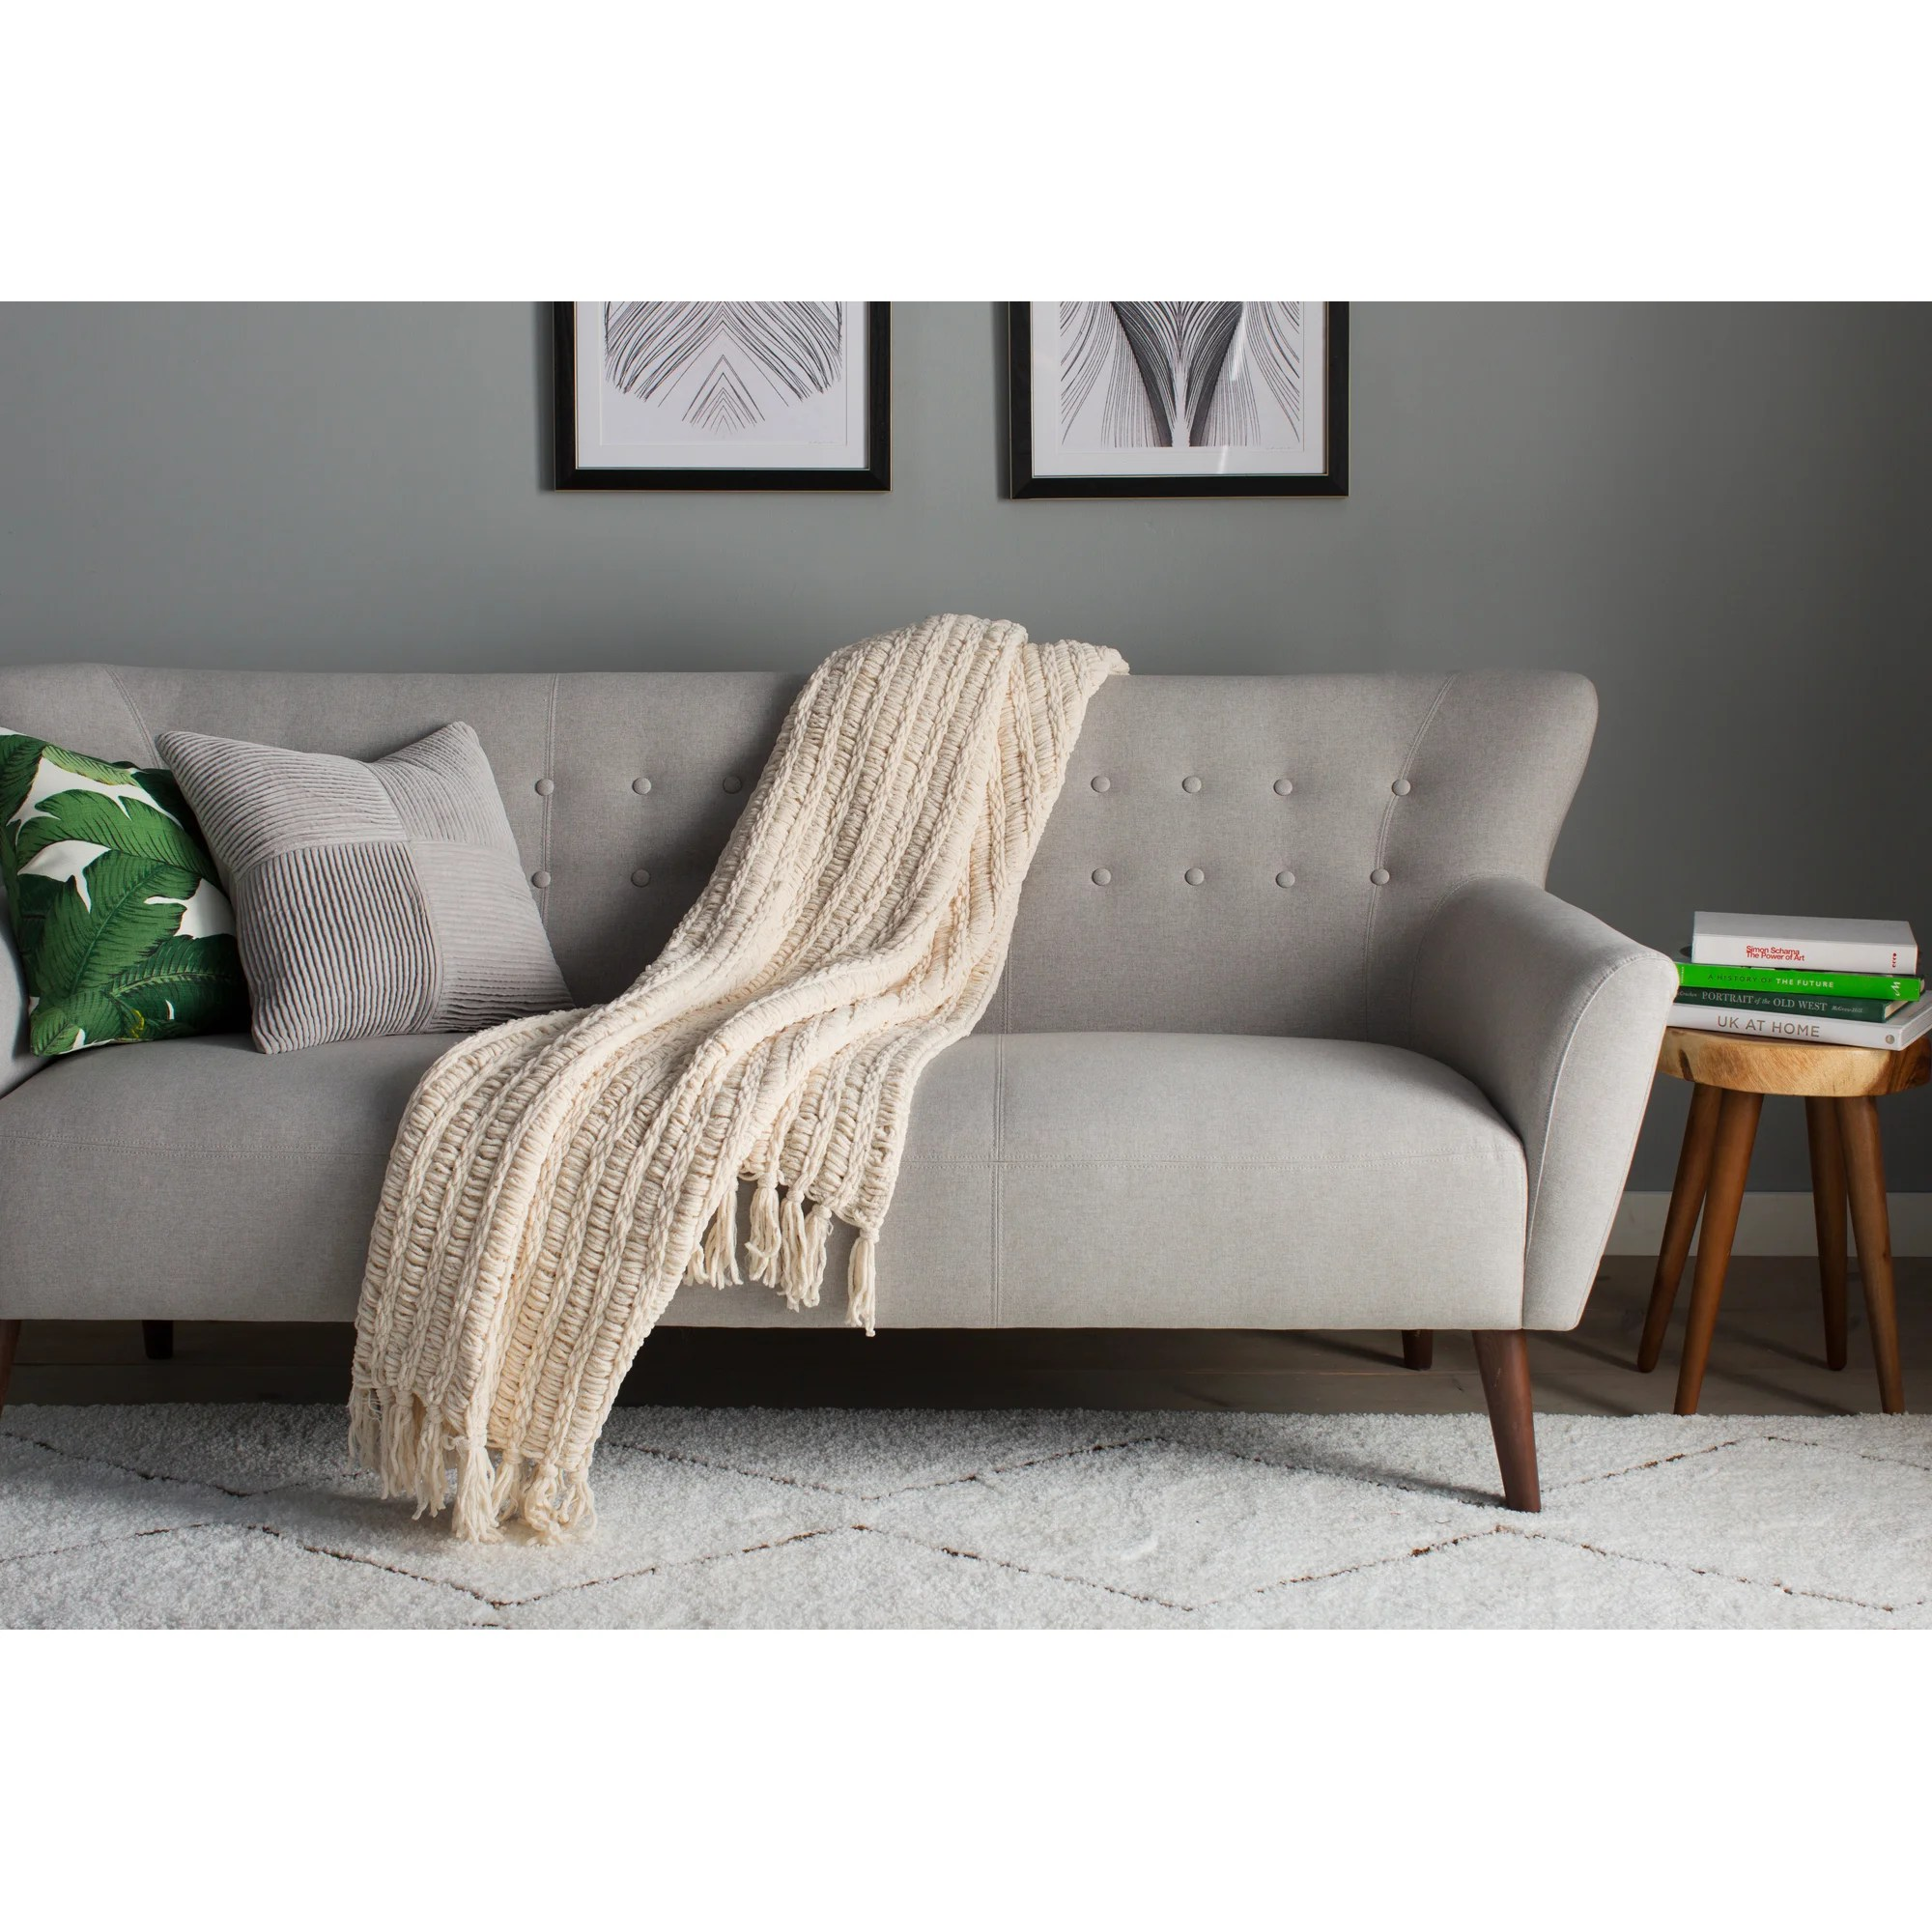 Luxury Throws For Sofas Uk Home Everydayentropy Com